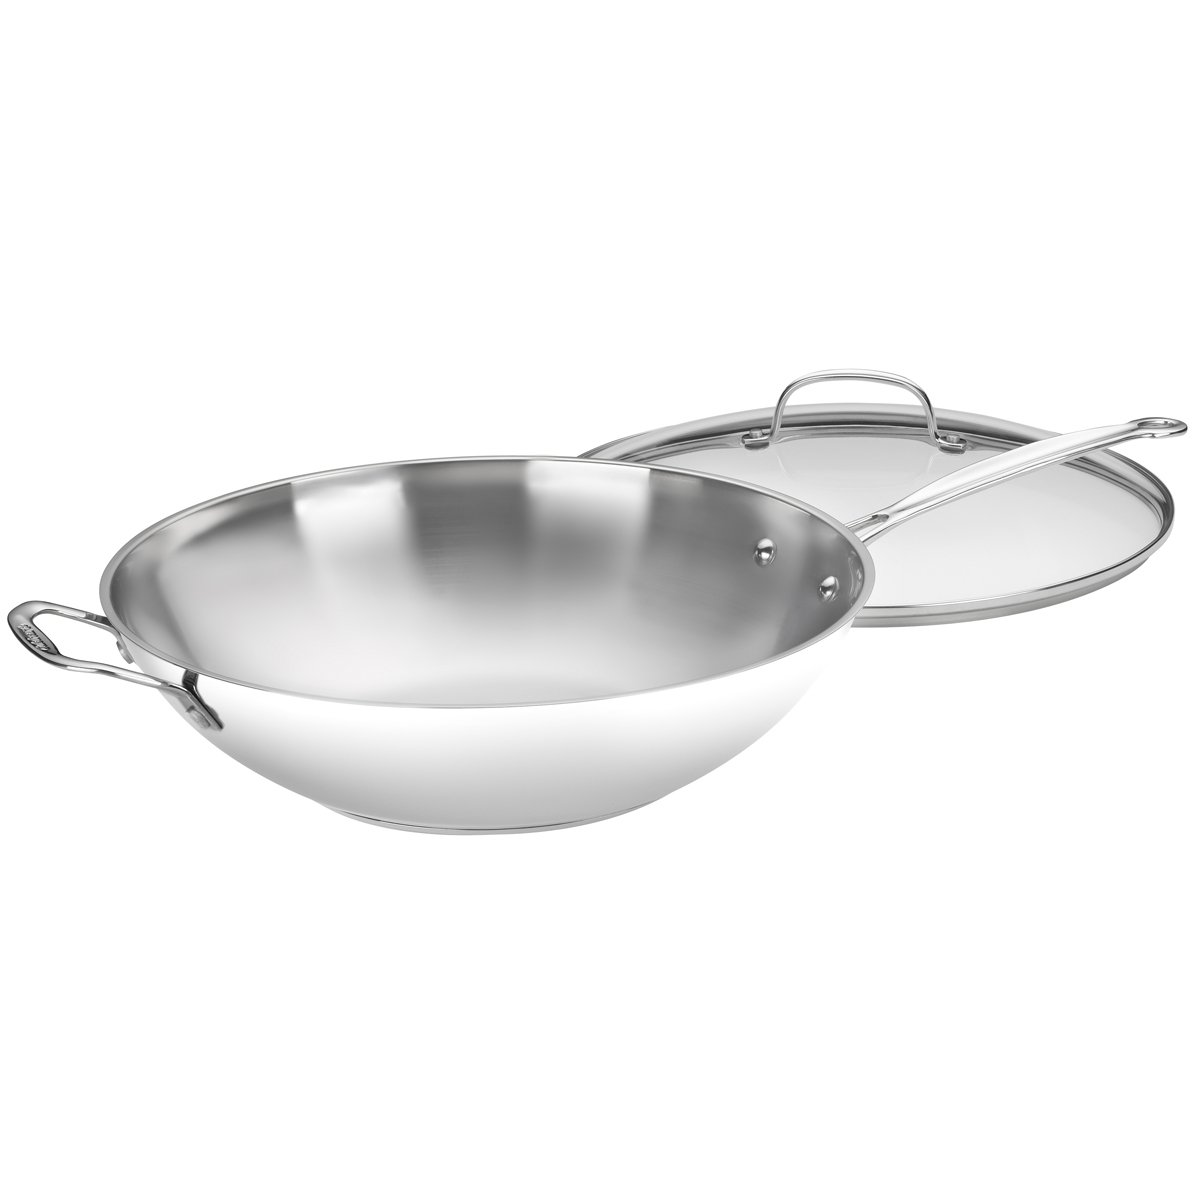 Cuisinart 726-38H Chef's Classic Stainless 14-Inch Stir-Fry Pan with Helper Handle and Glass Cover by Cuisinart